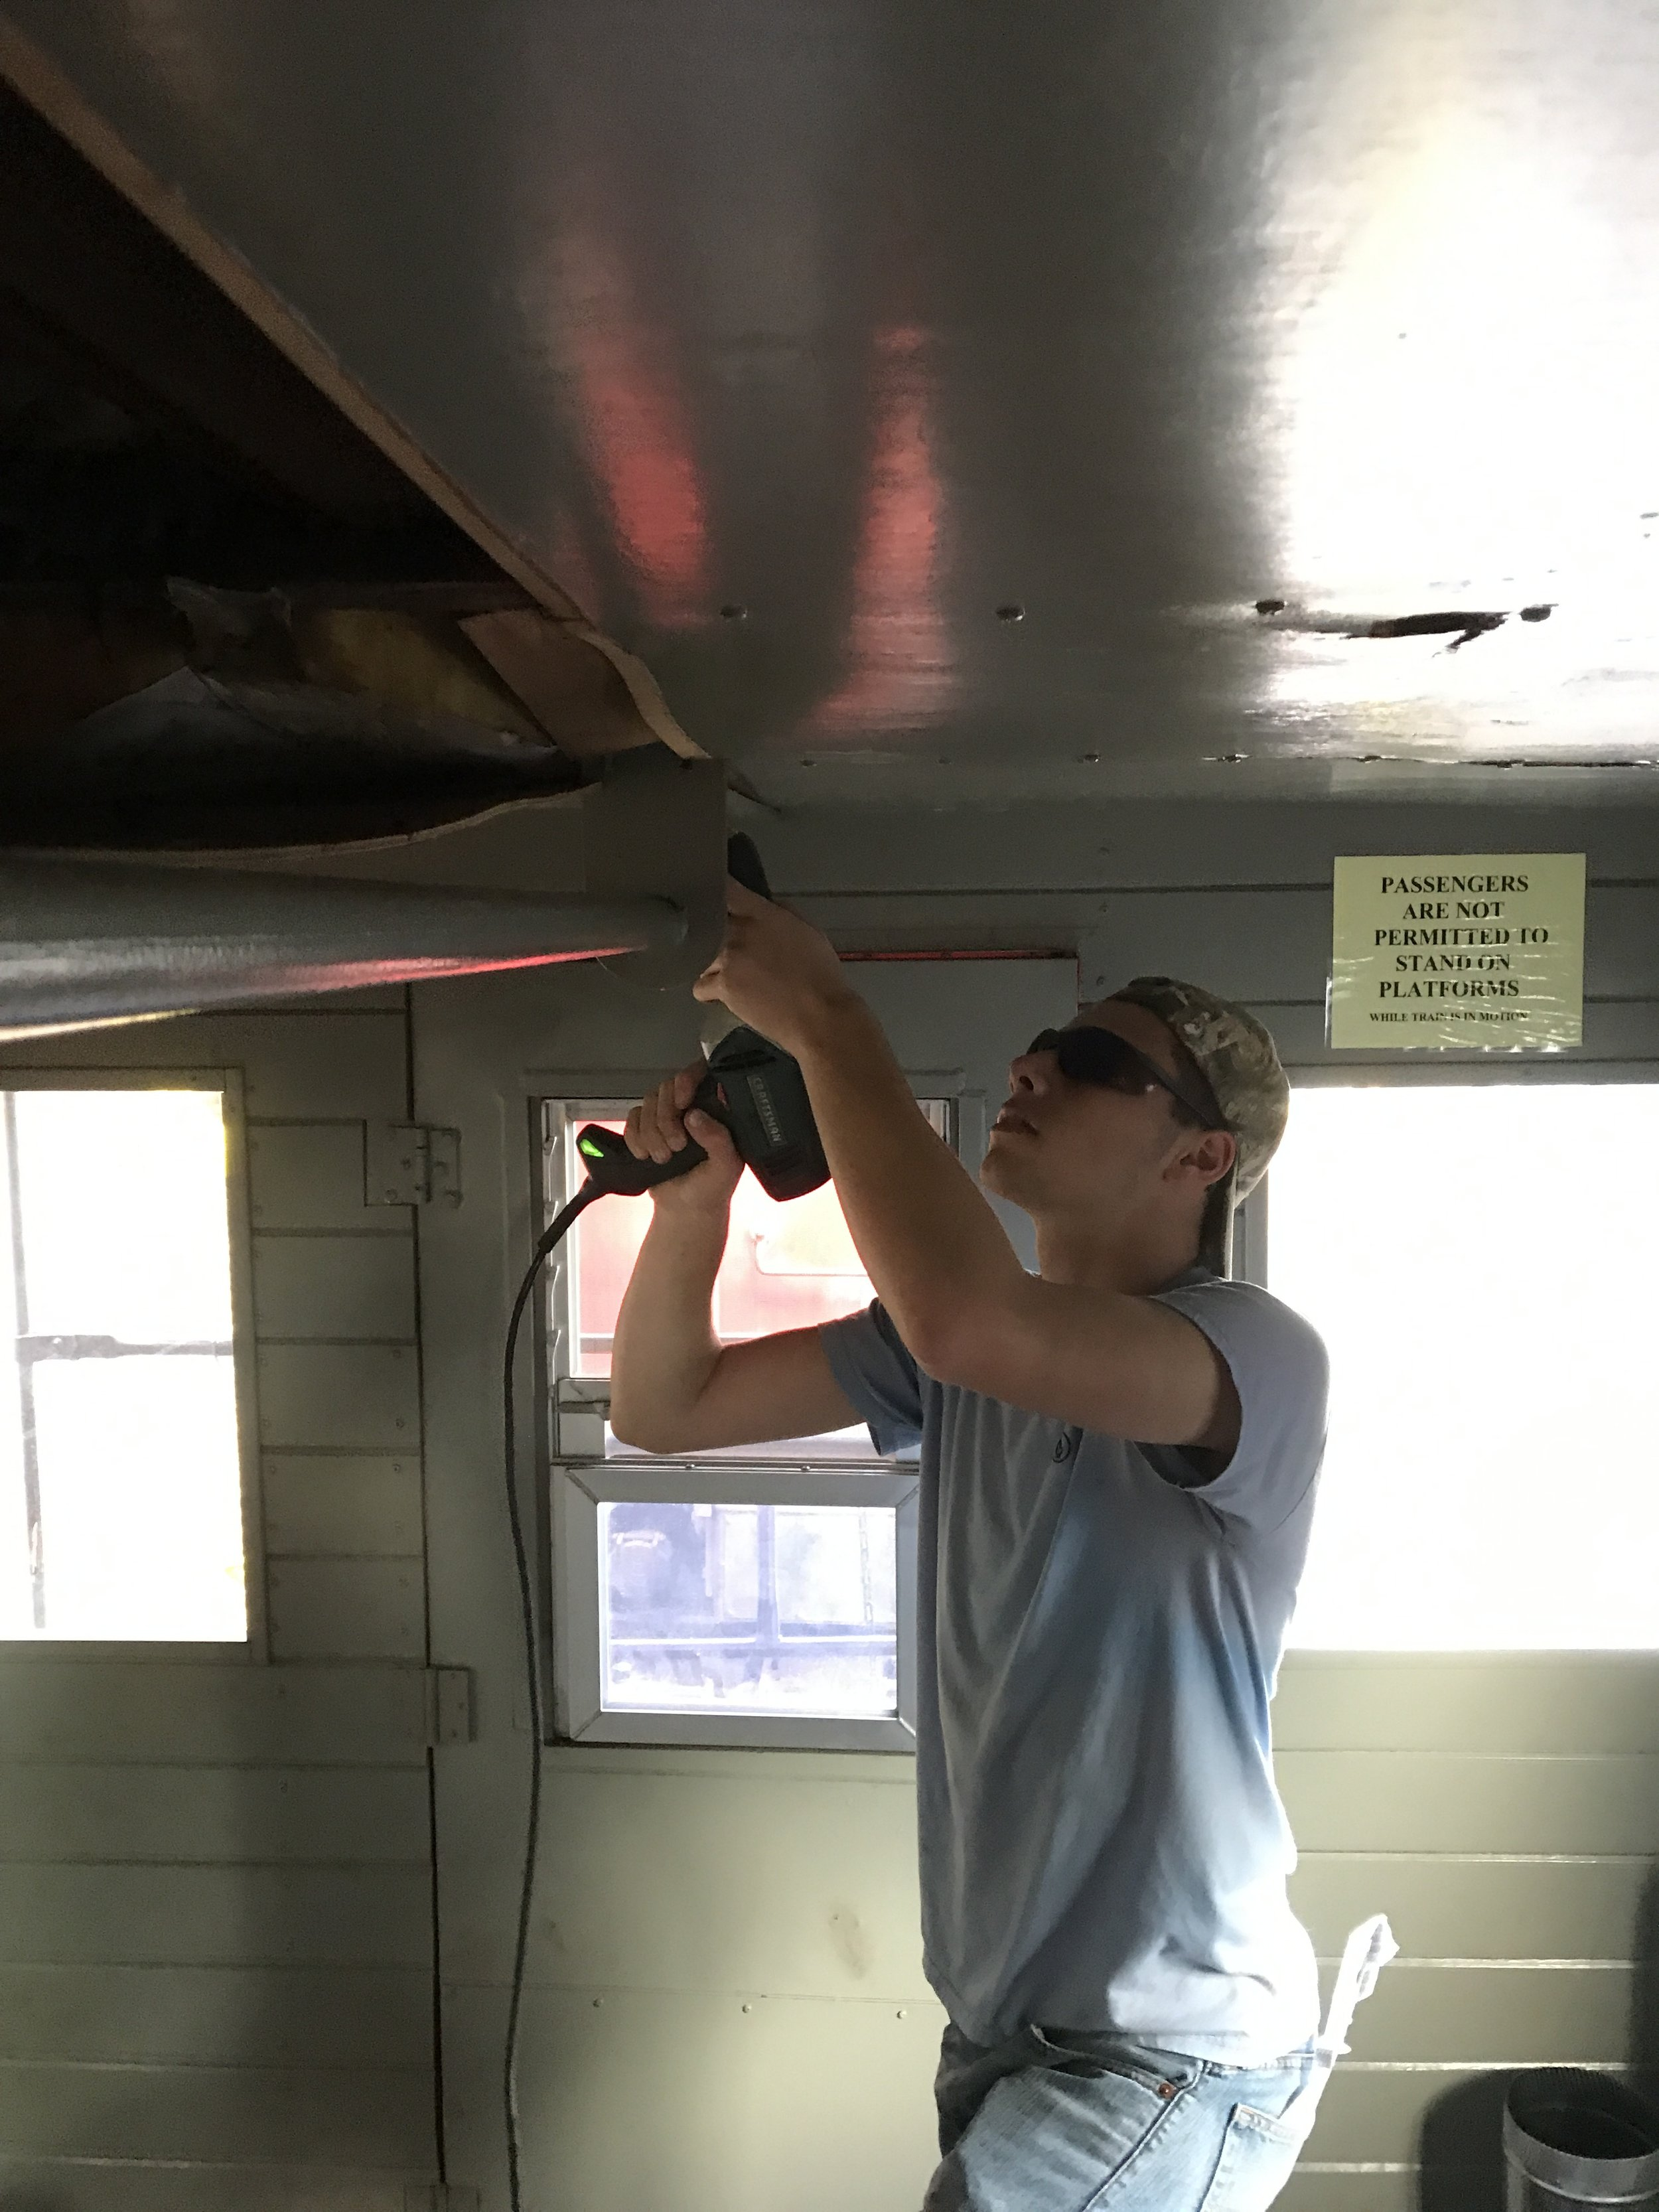 Matt Herman unscrewing wood panels which were used to replace the ceiling in part of the caboose which caught fire in the Conrail era.